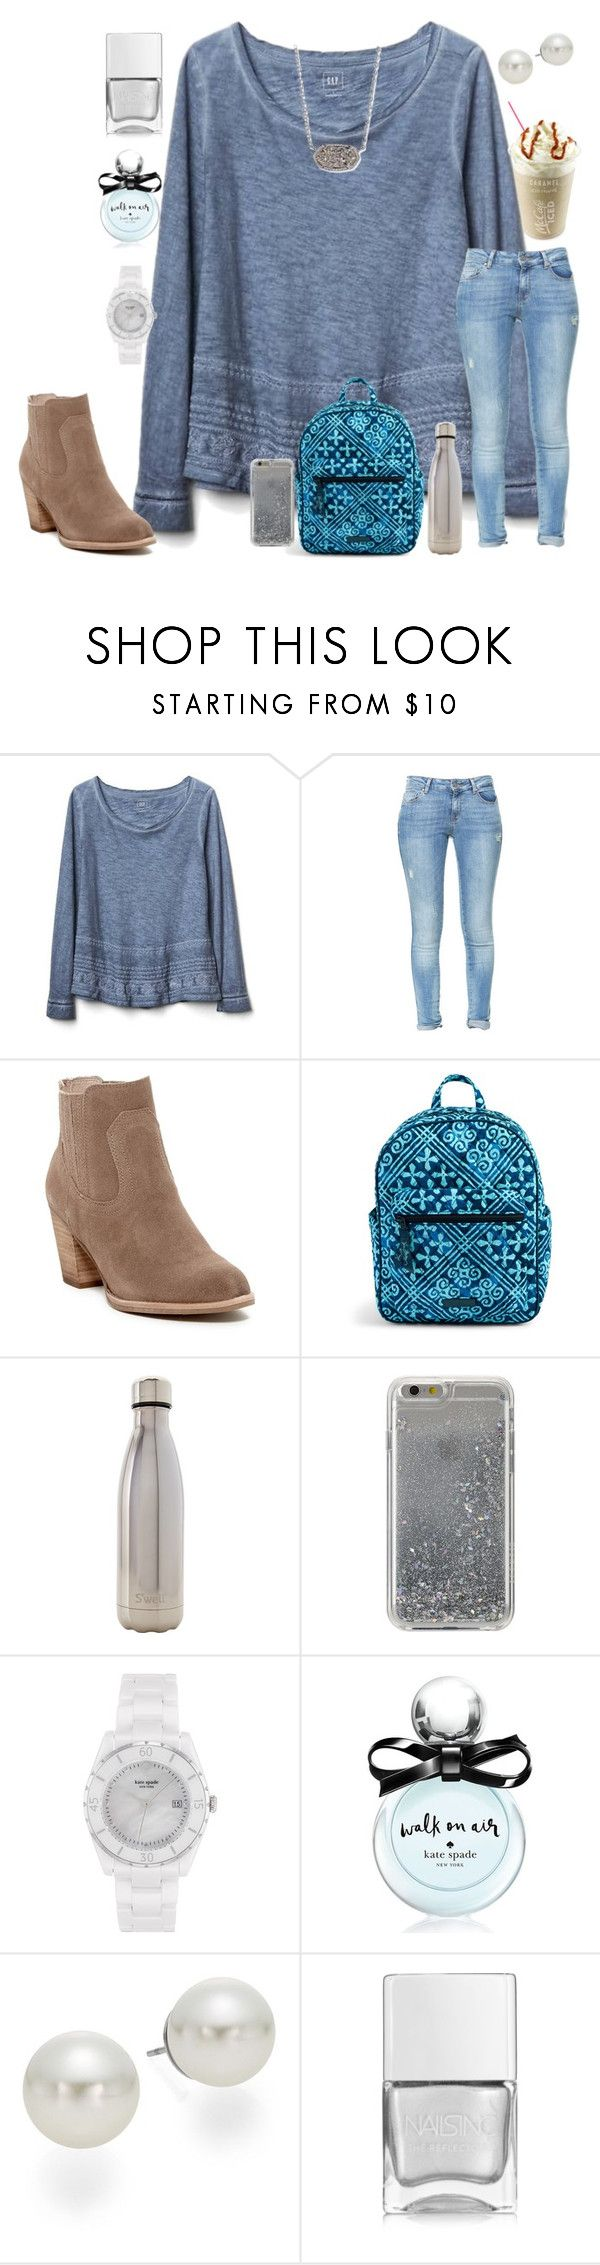 """I have been so busy guys"" by ctrygrl1999 ❤ liked on Polyvore featuring Gap, Zara, Dolce Vita, Vera Bradley, S'well, Agent 18, Kate Spade, AK Anne Klein, Nails Inc. and Kendra Scott"